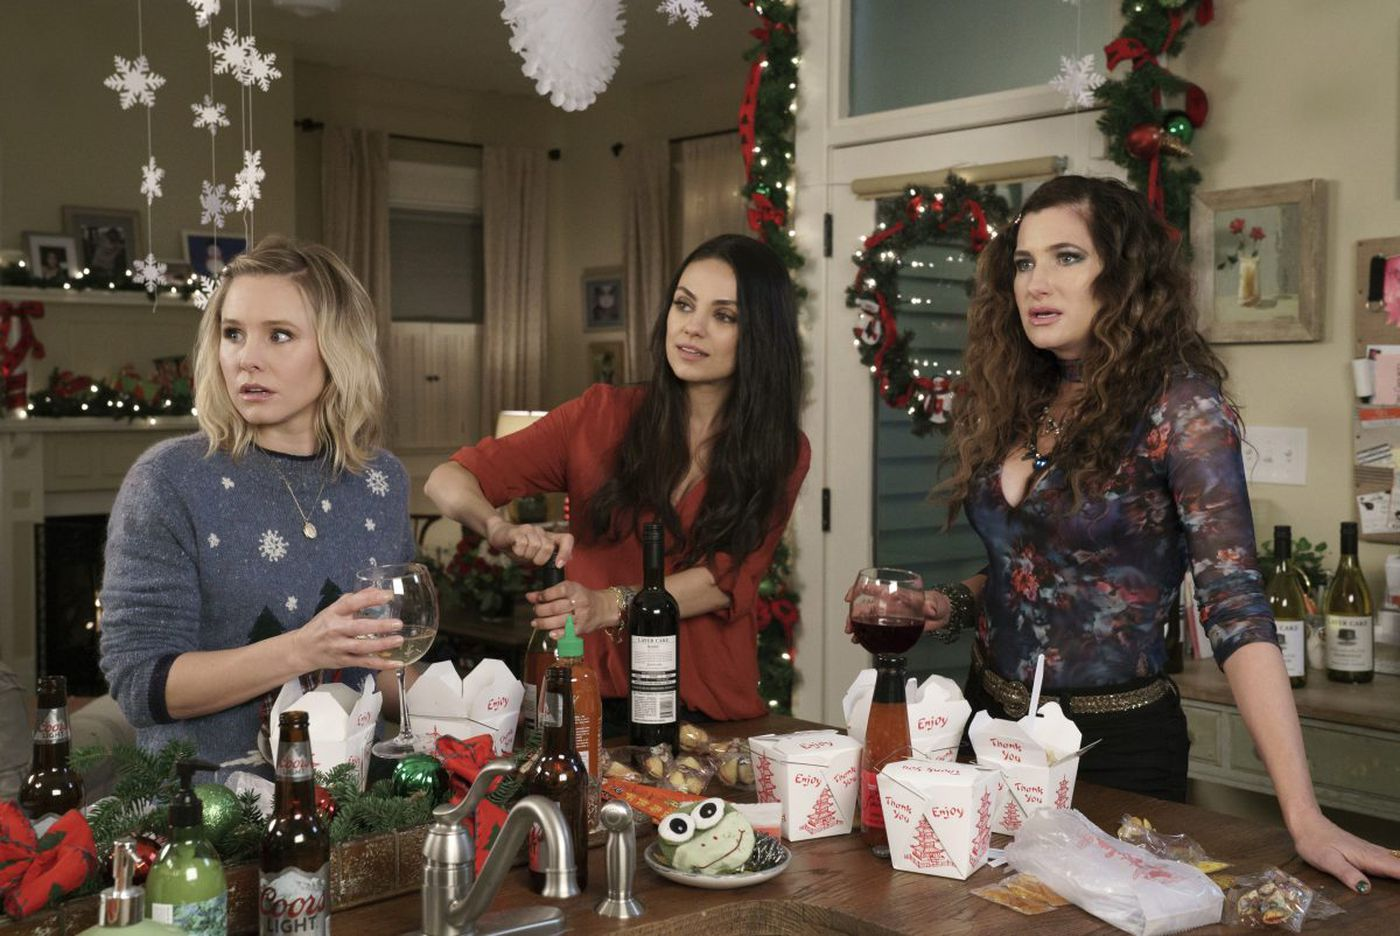 'A Bad Moms Christmas': Going for the easy and sleazy is no gift